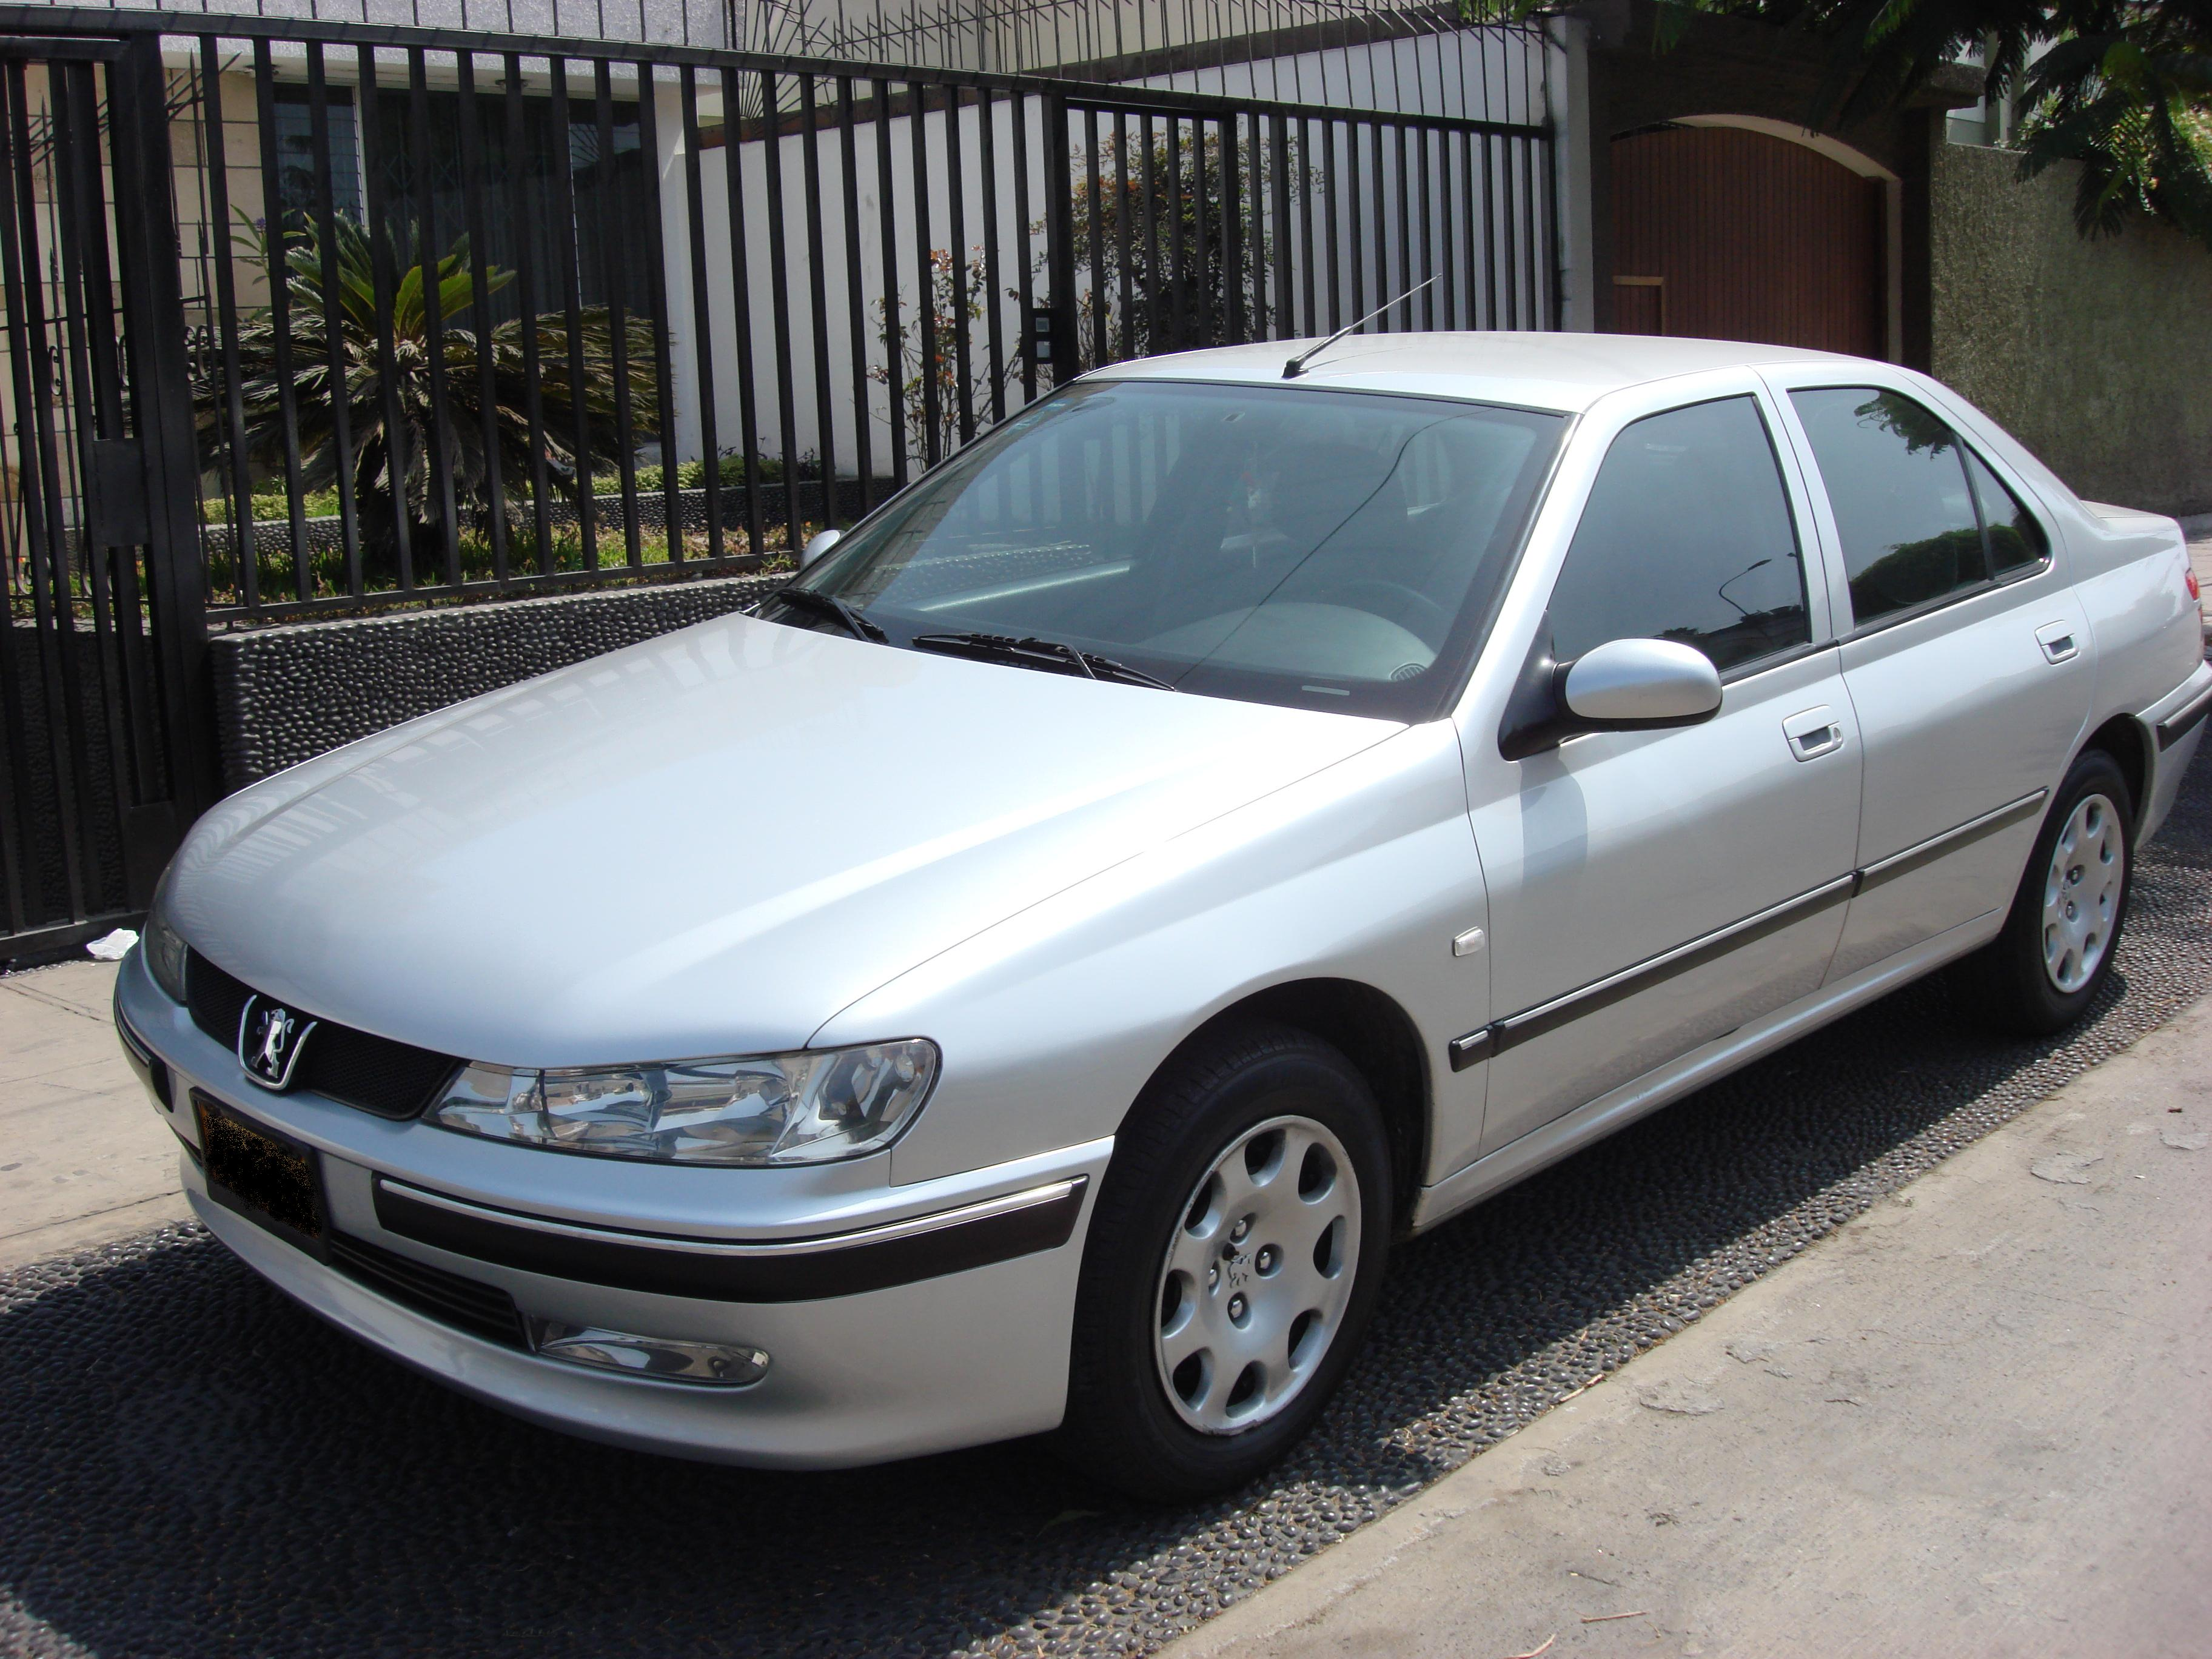 Peugeot 406 Review And Photos